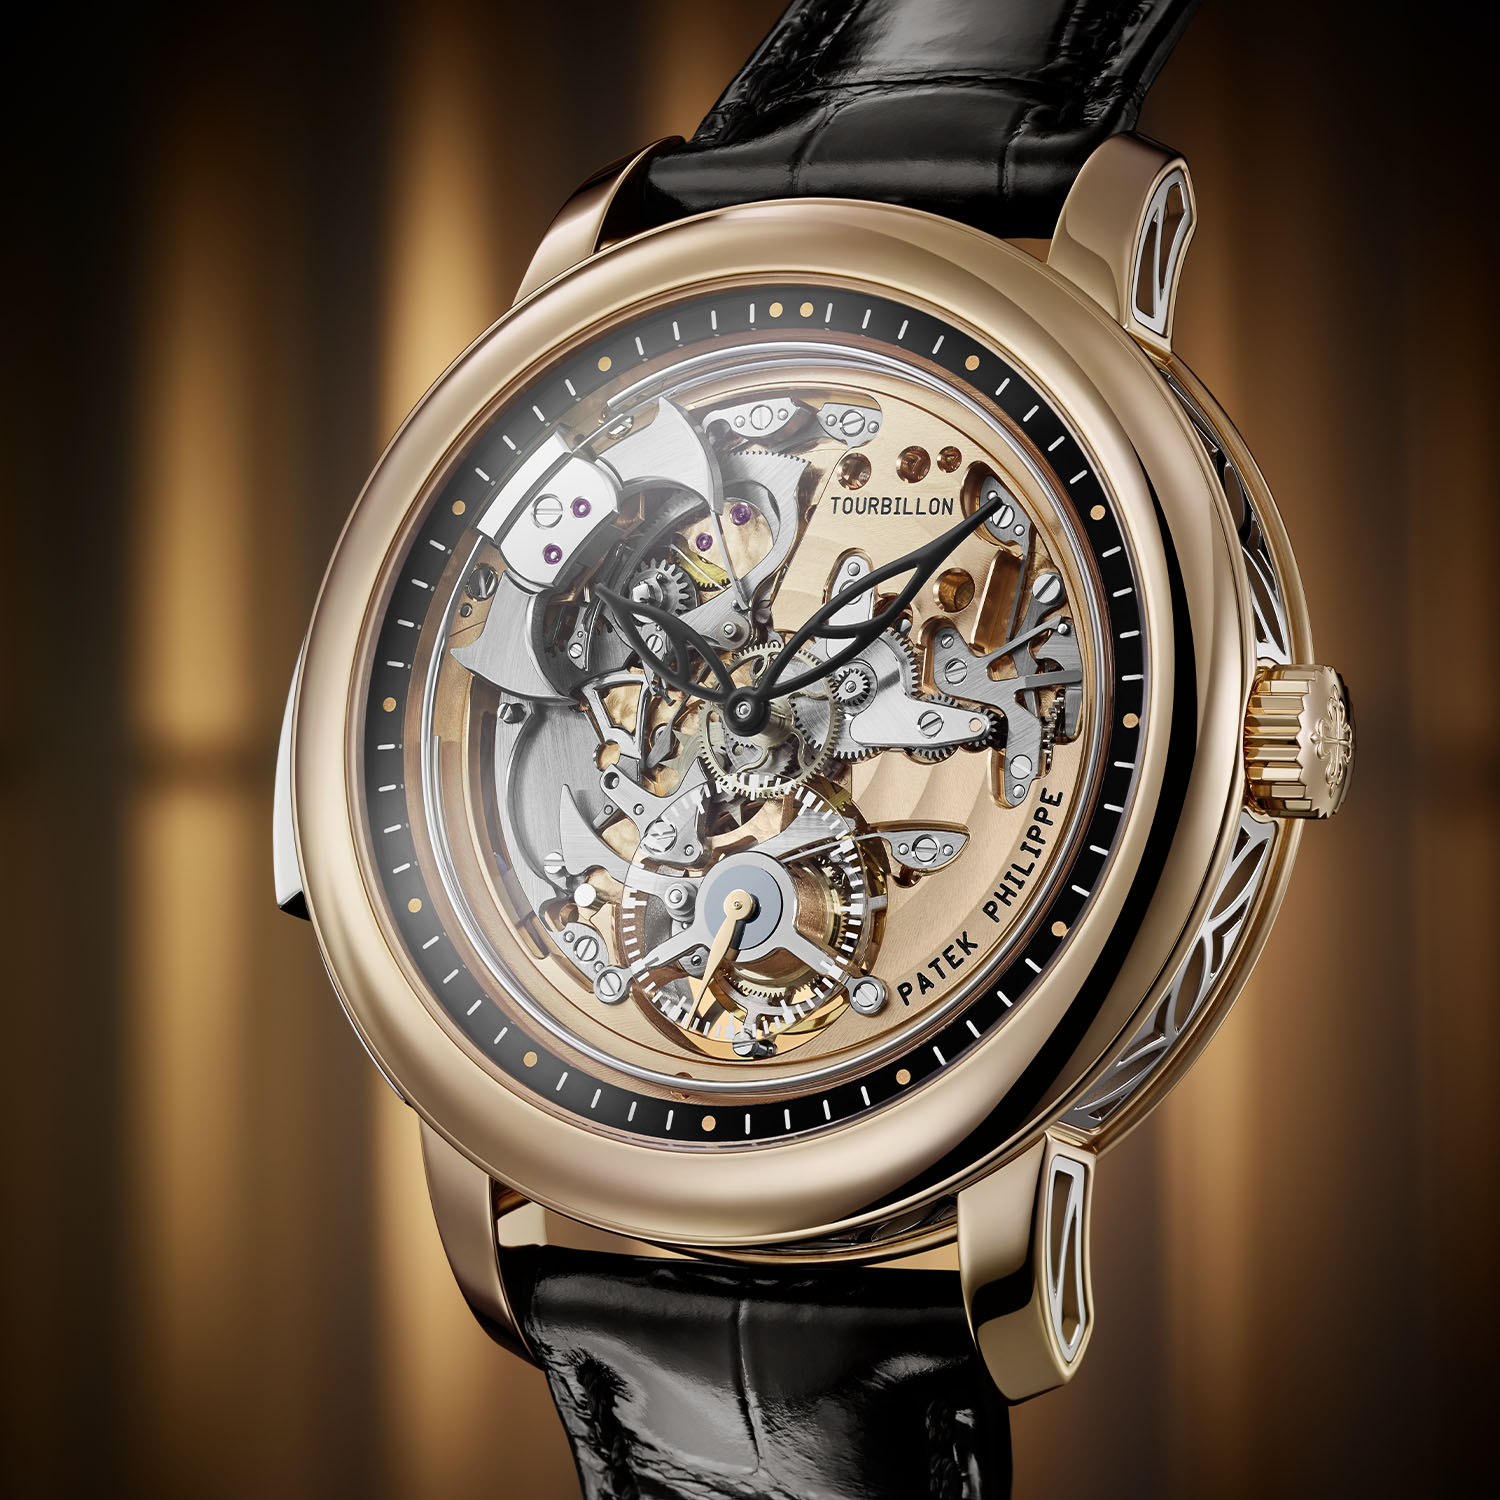 Patek Philippe 5303R-001 Minute Repeater Tourbillon